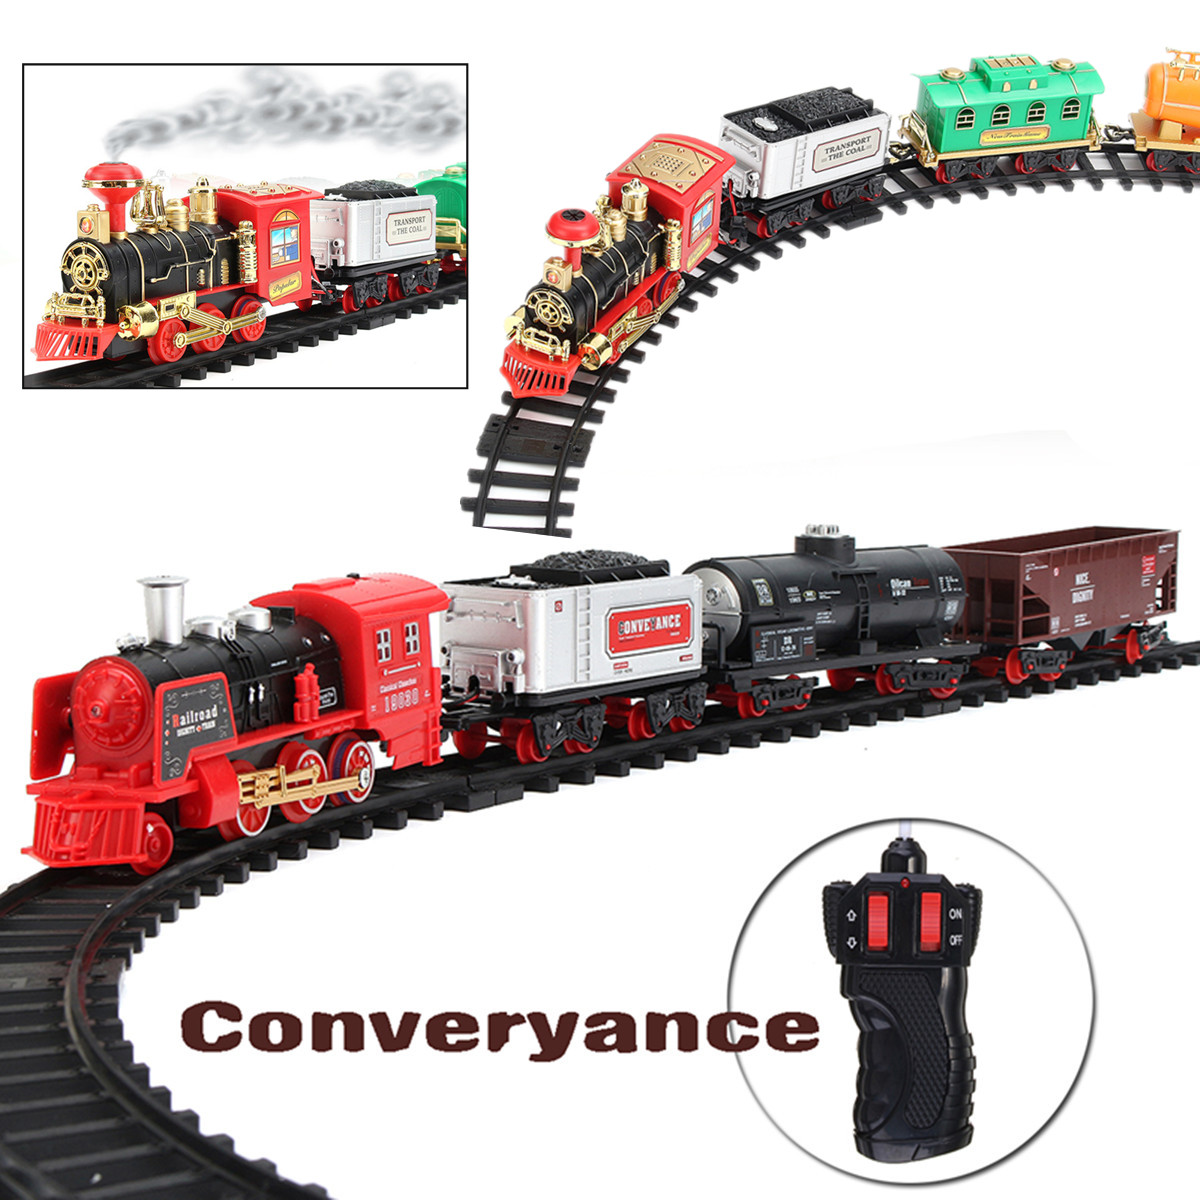 Rechargable Electric Remote Control Classic Steam Smoke Train Set Railway Car Set Train Model Toy Gift For Kids With Real Smoke, Music, and Lights